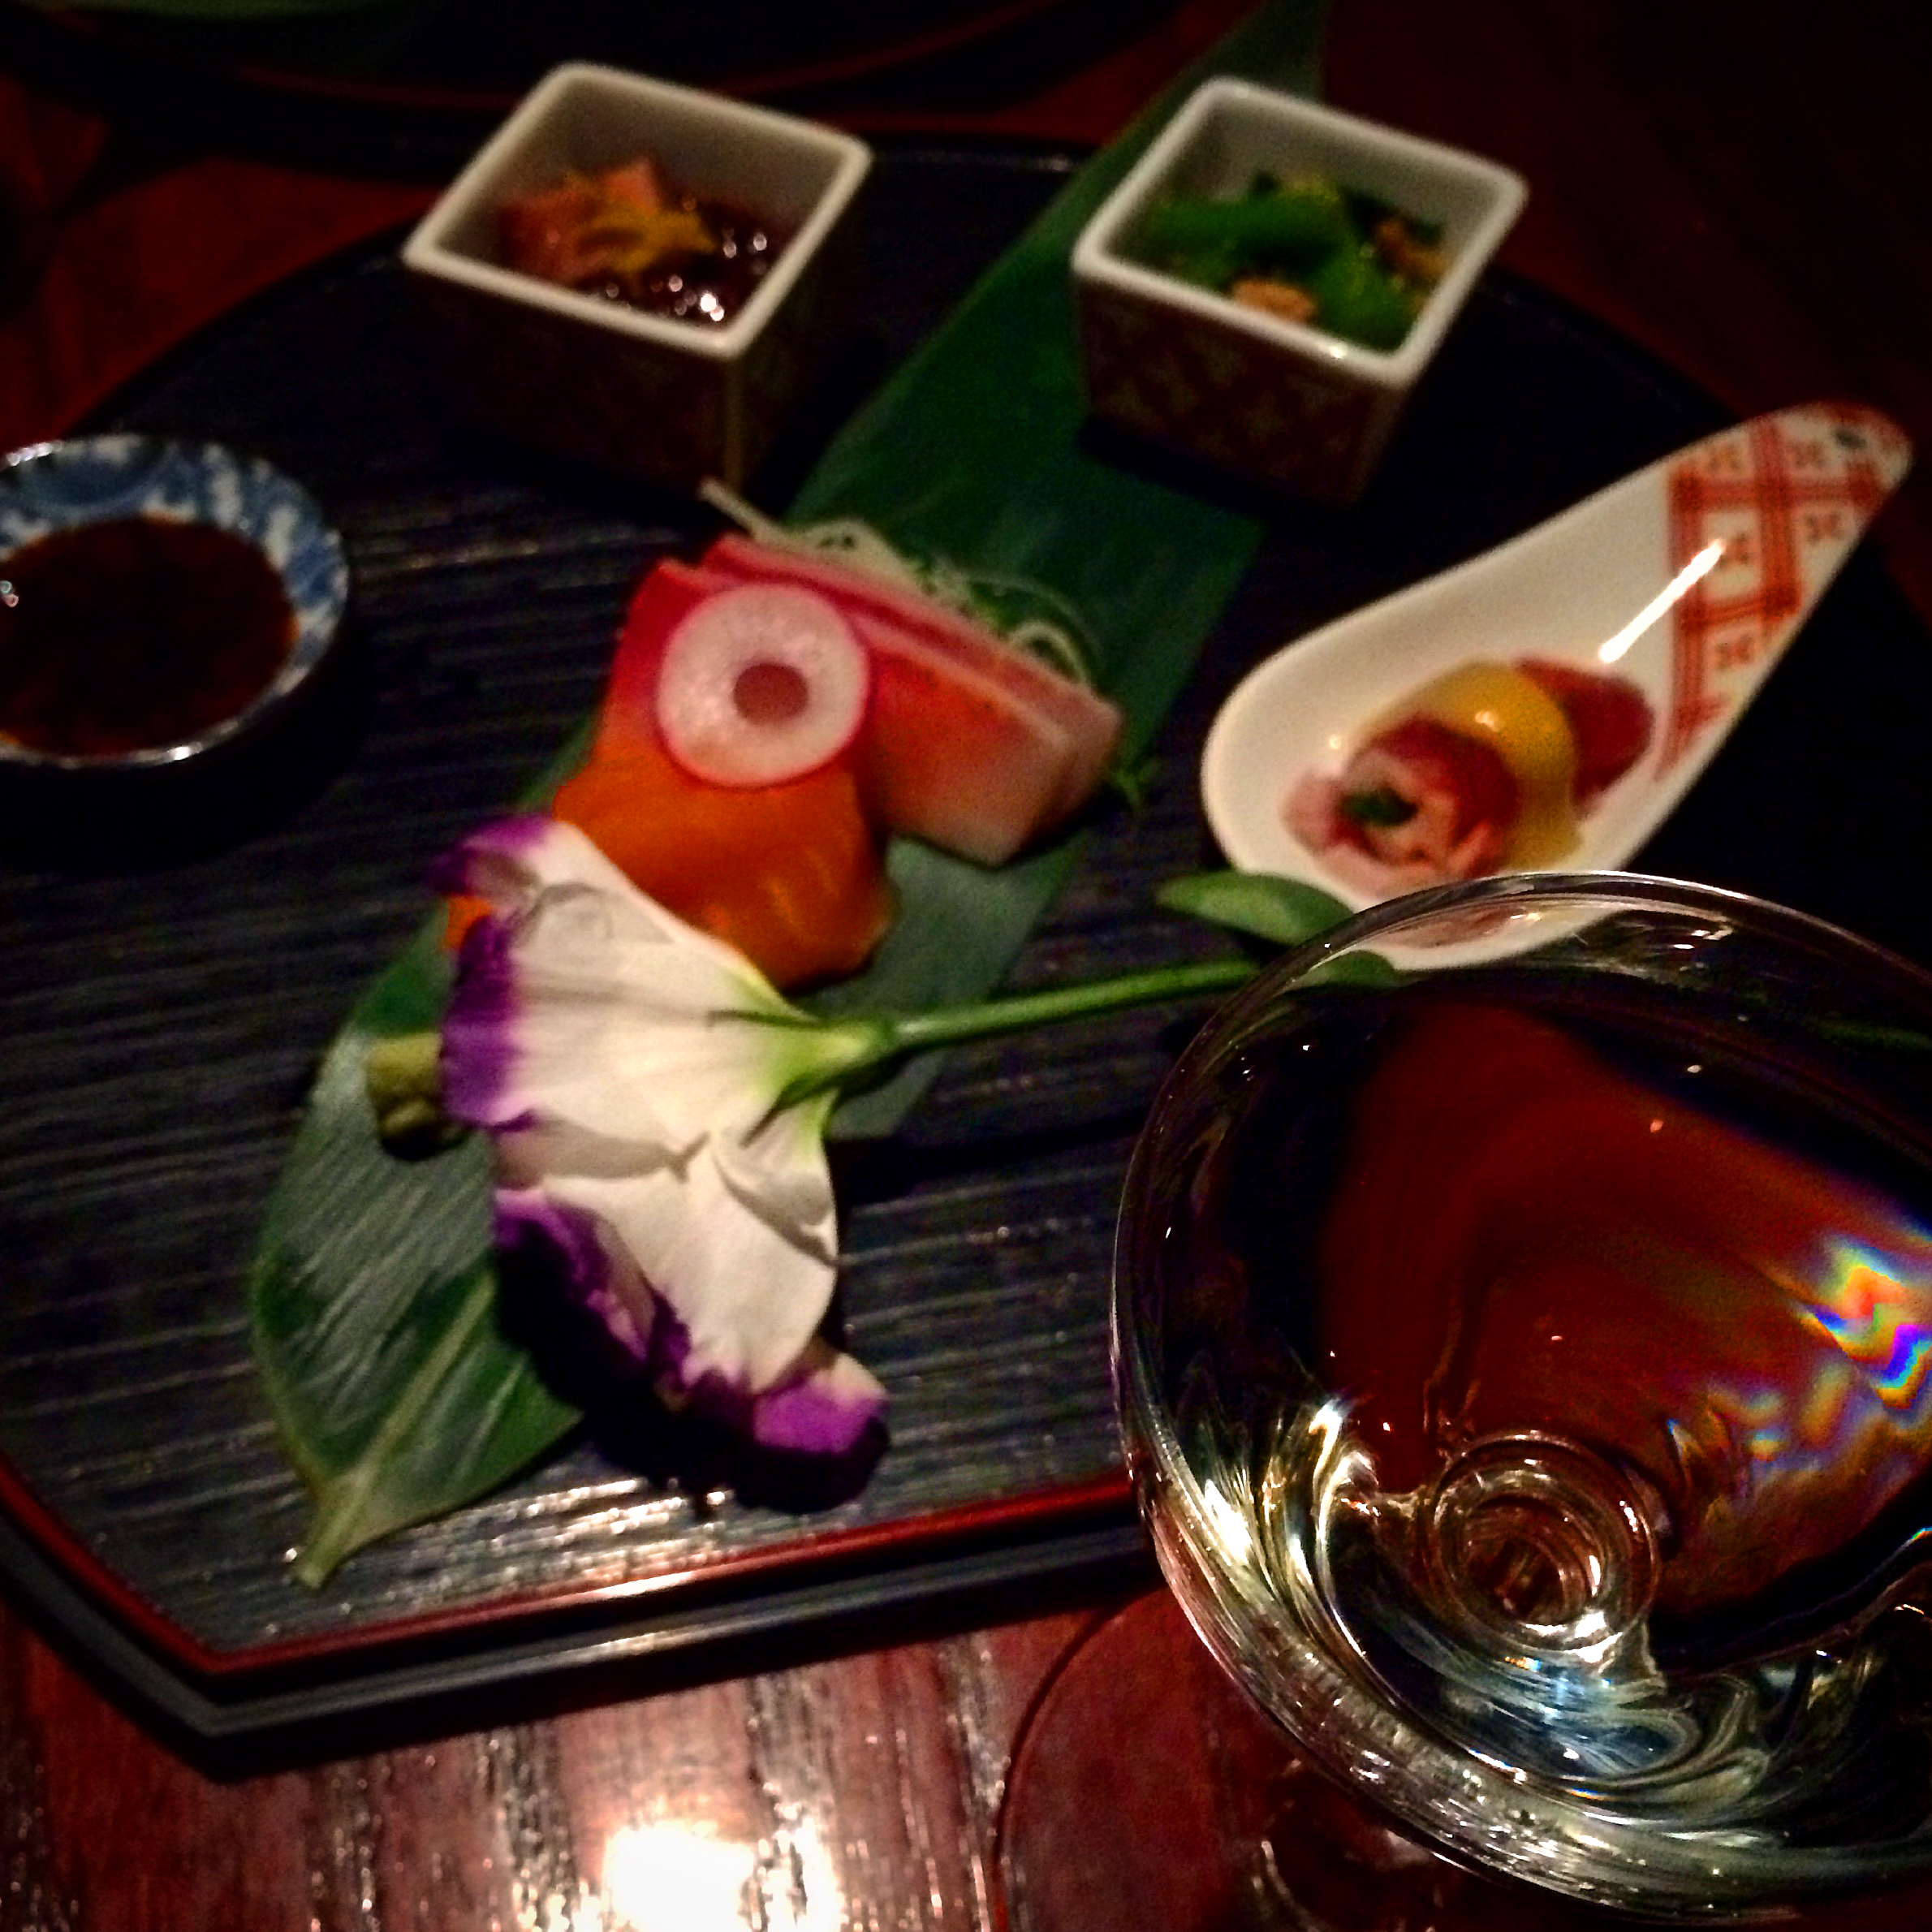 Part of Chef's Omakase